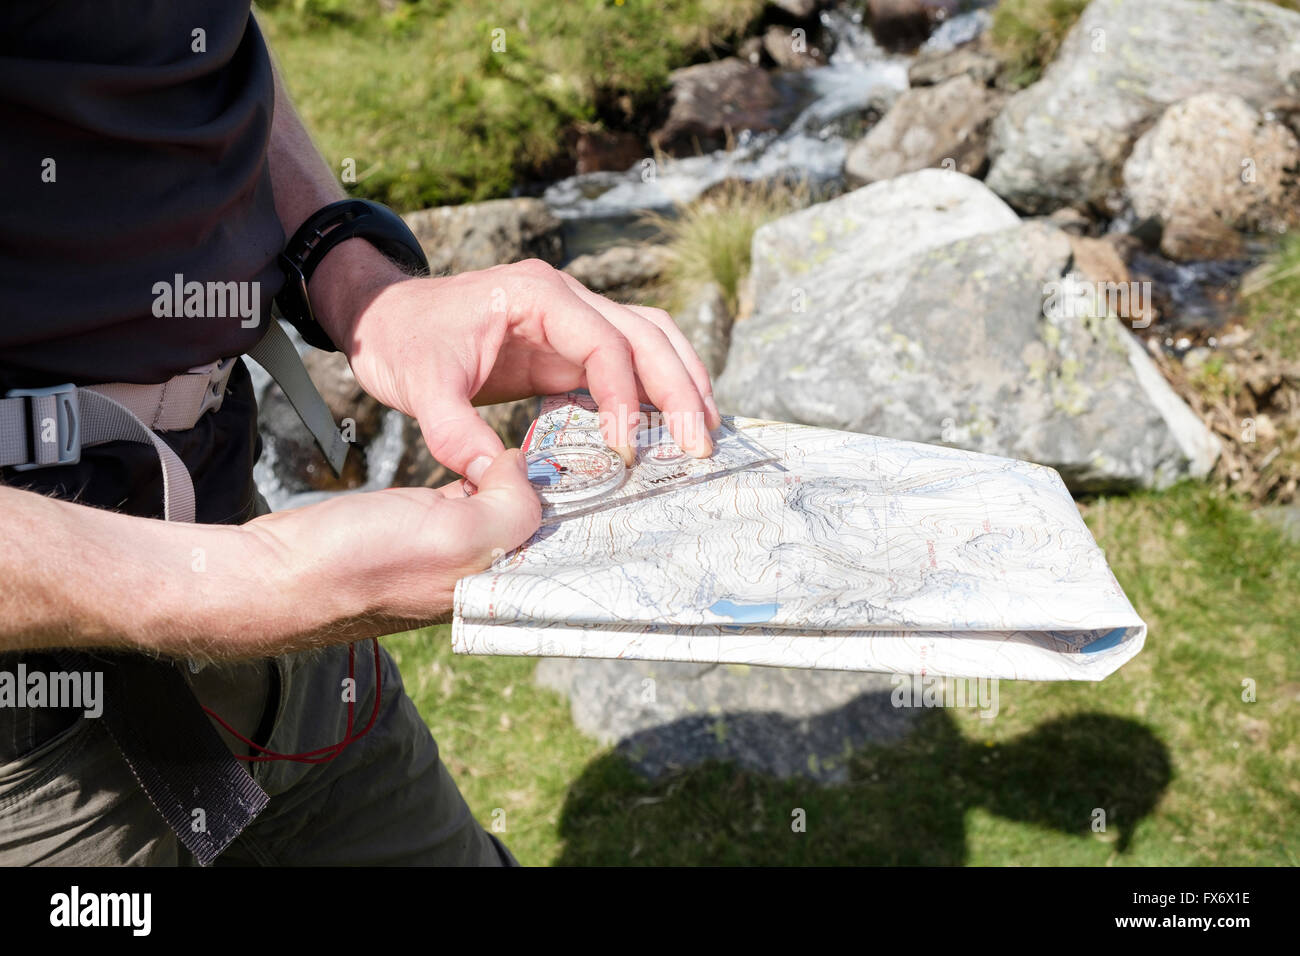 Hiker navigating the direction using holding a Harvey mountain map and Silva hiking compass to take a bearing in - Stock Image